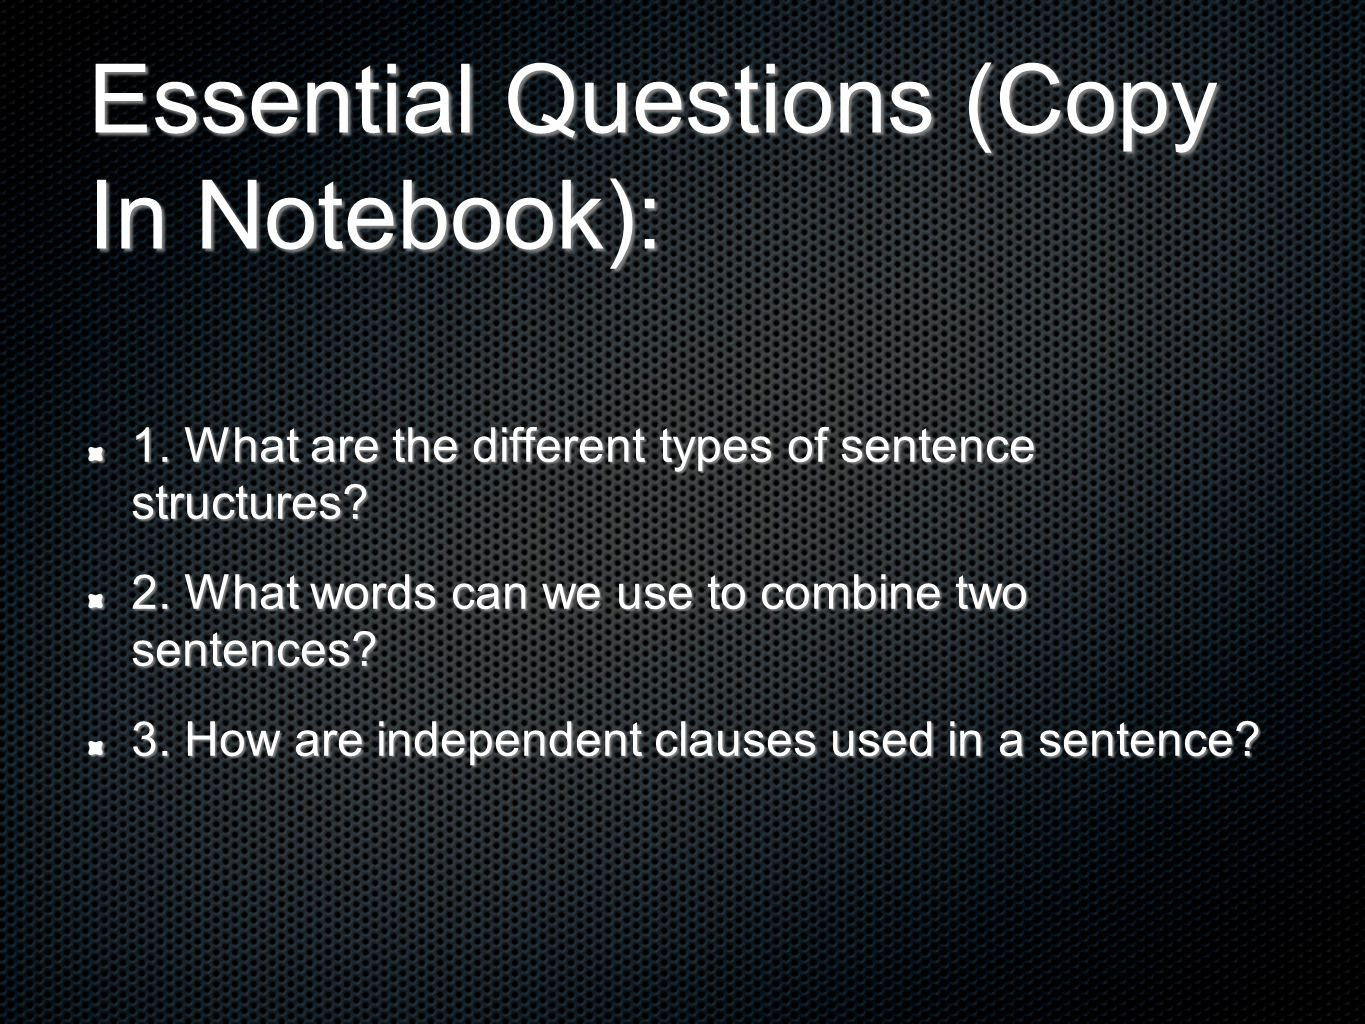 Essential Questions (Copy In Notebook): 1. What are the different types of sentence structures? 2. What words can we use to combine two sentences? 3.